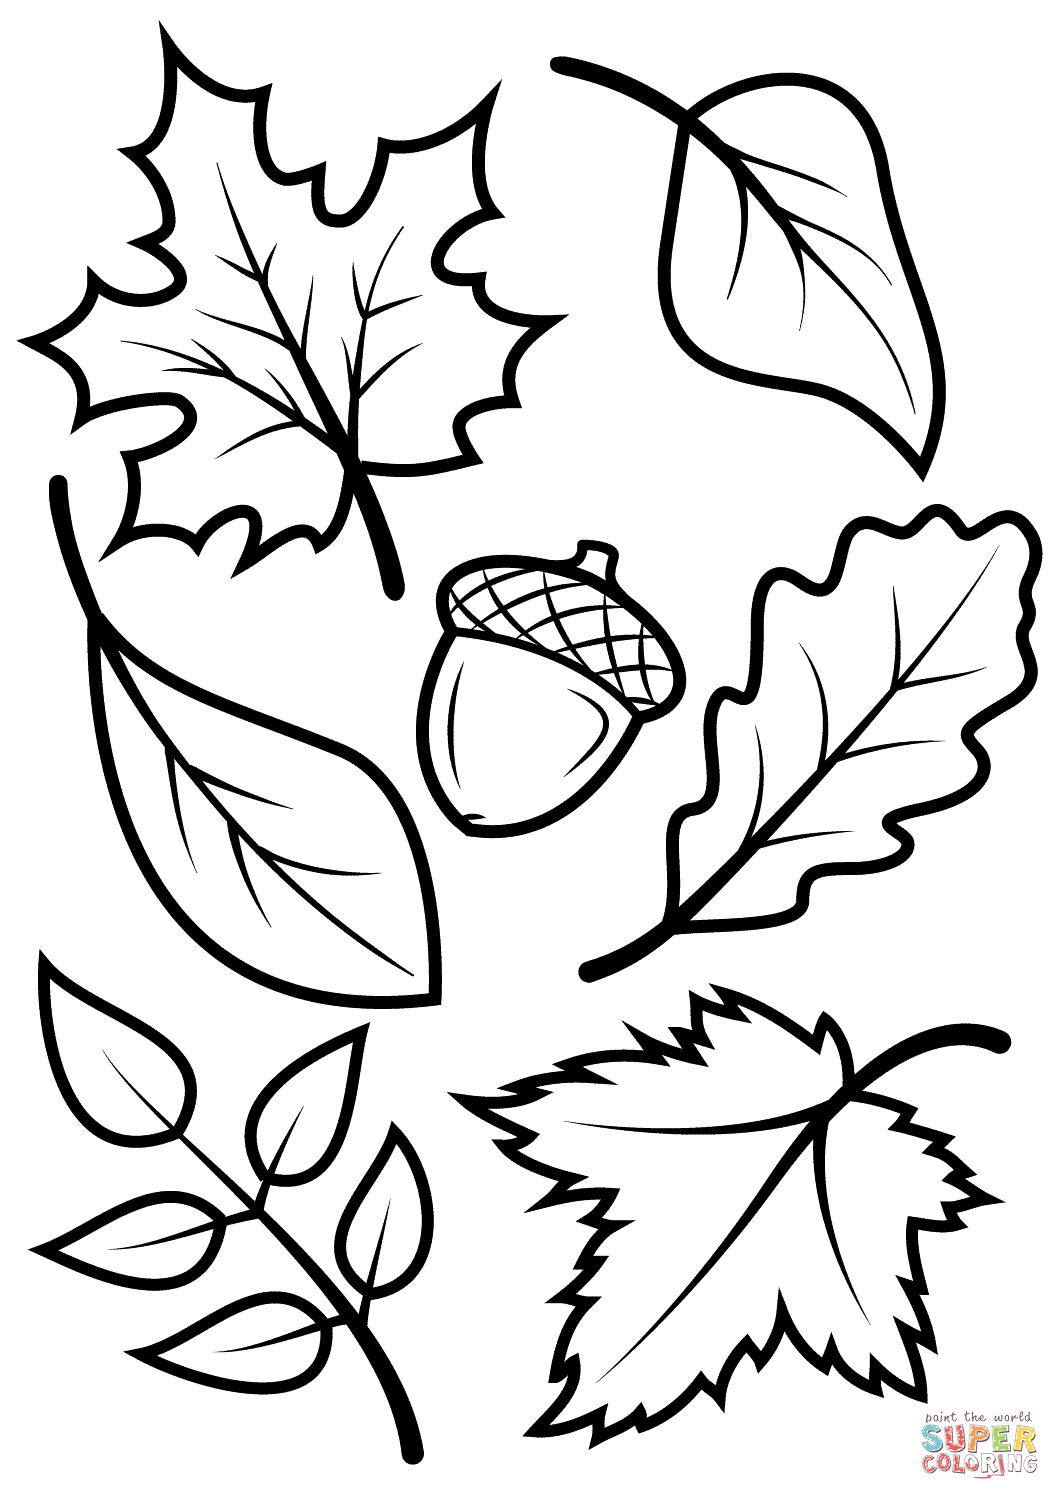 Fall Leaves And Acorn Coloring Page | Free Printable Coloring Pages - Free Fall Printable Coloring Sheets